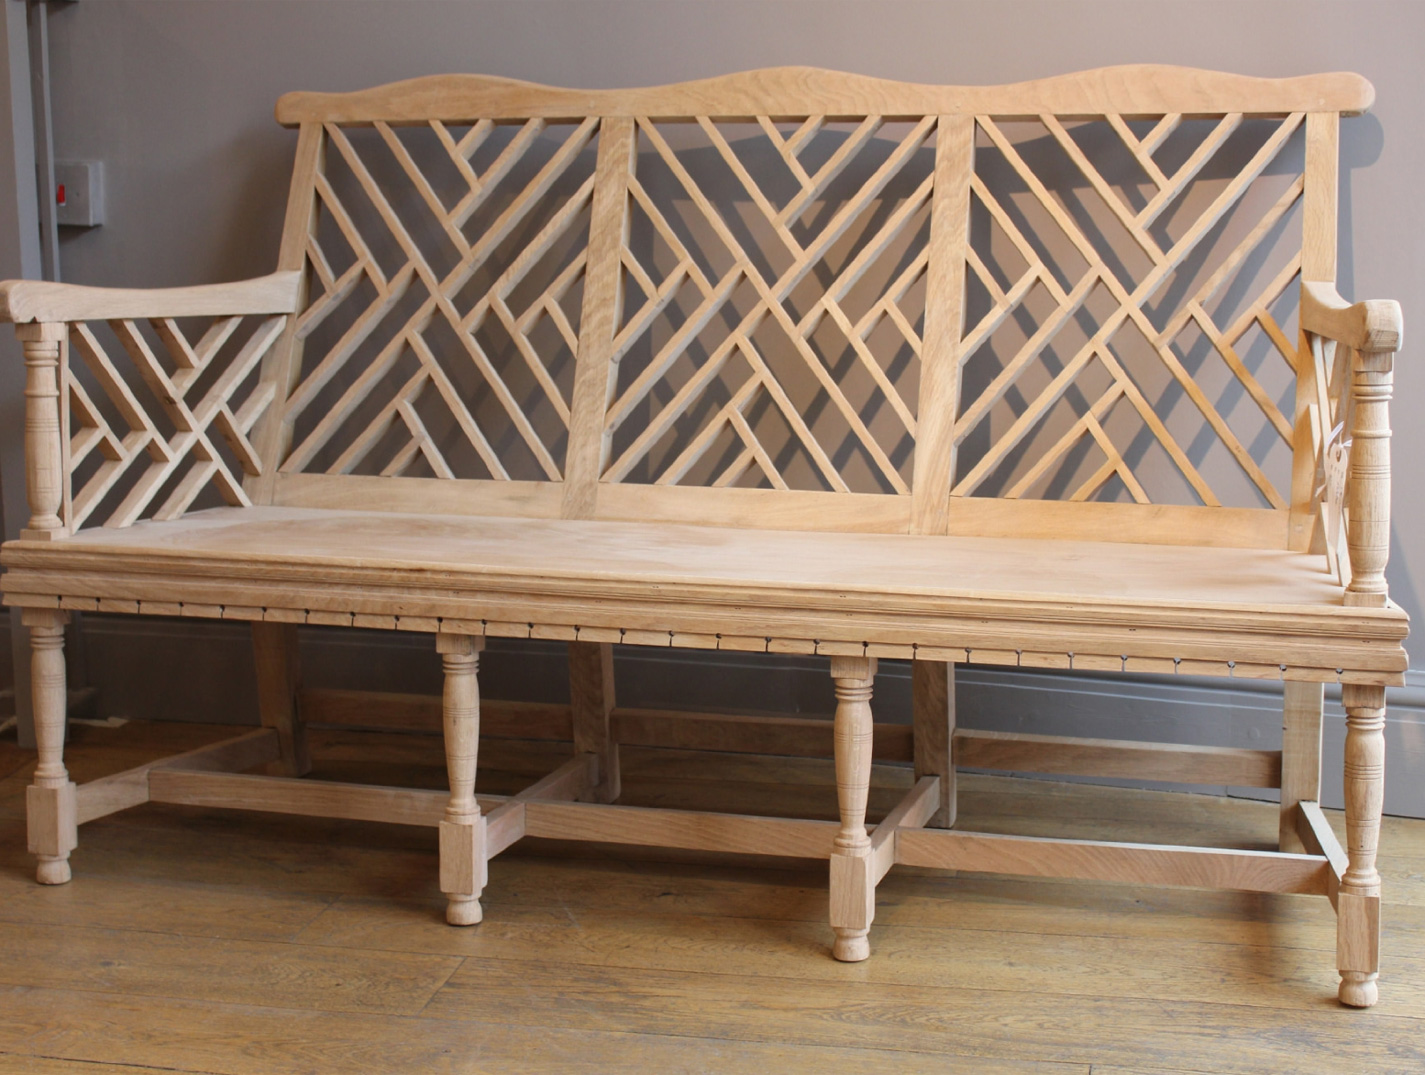 Lutyens style three seater garden bench